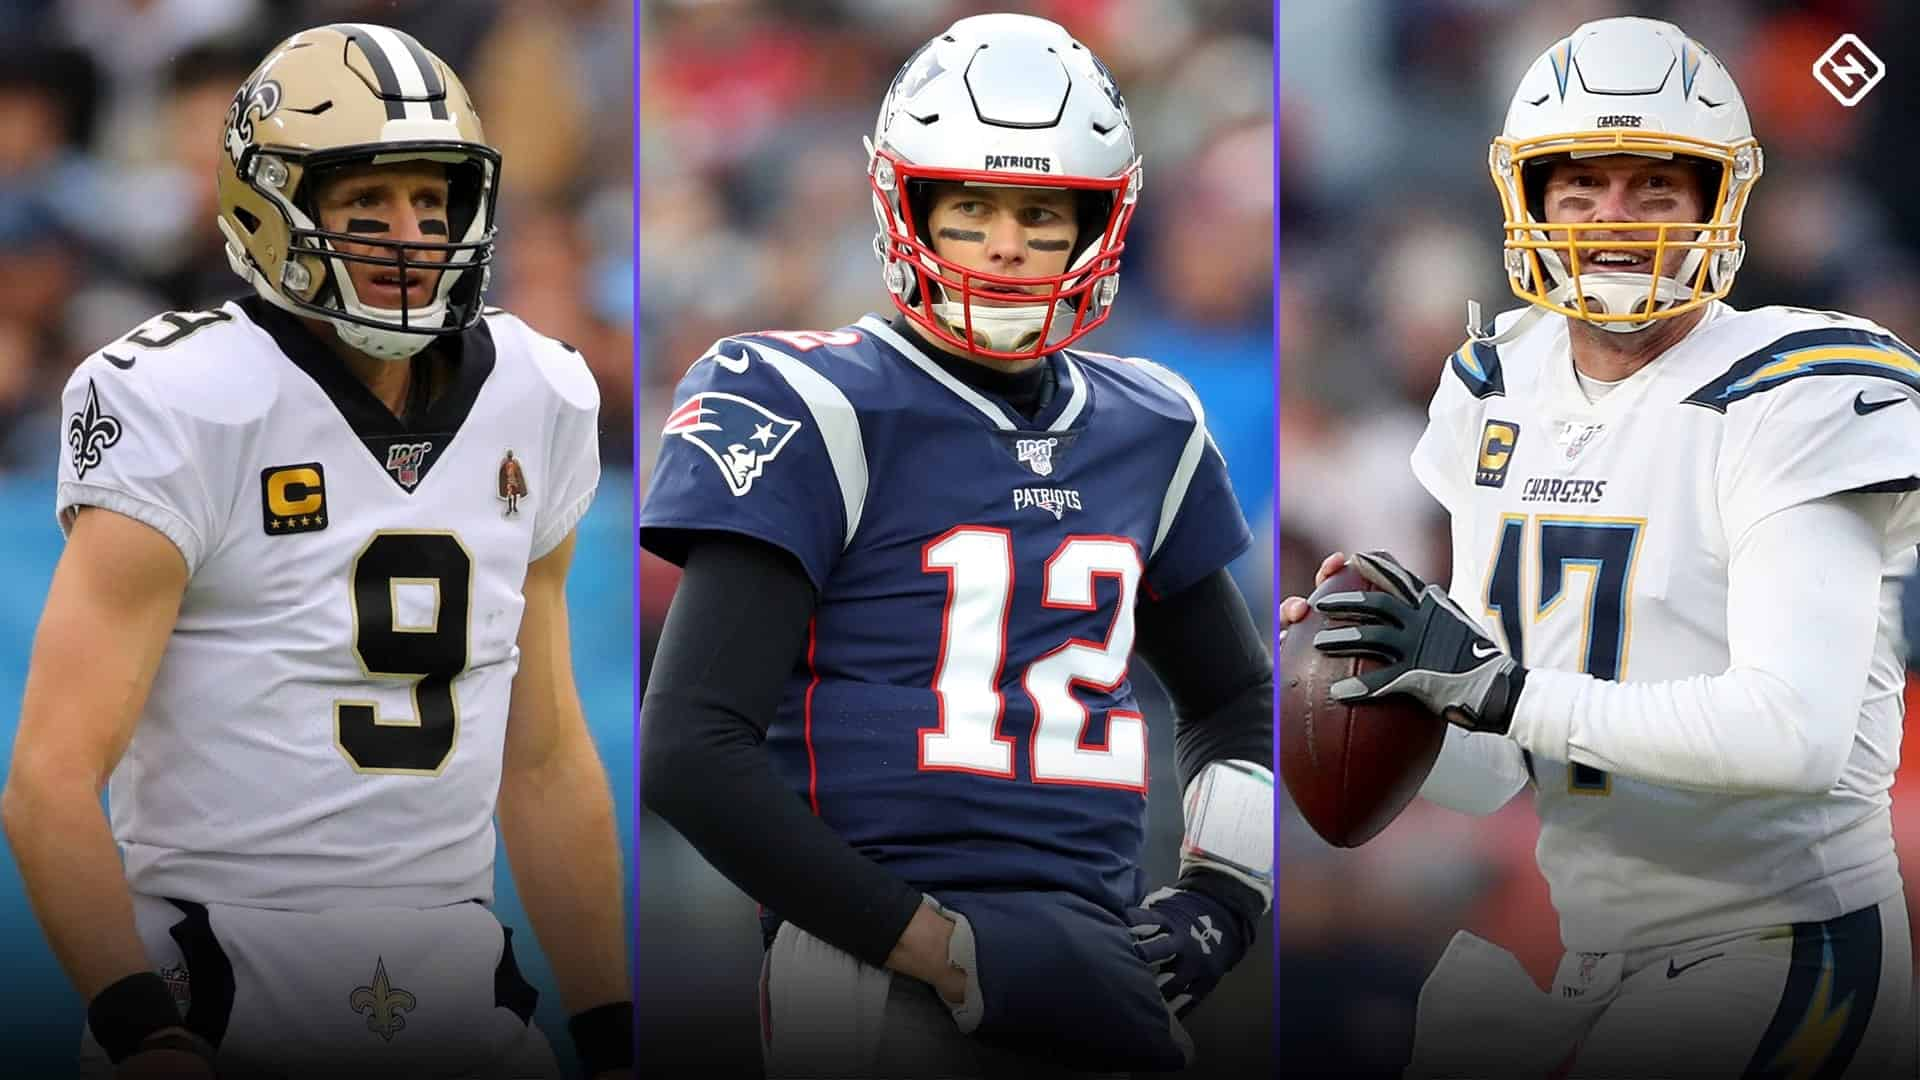 2020 Free Agent Quarterbacks to watch in Superflex Leagues